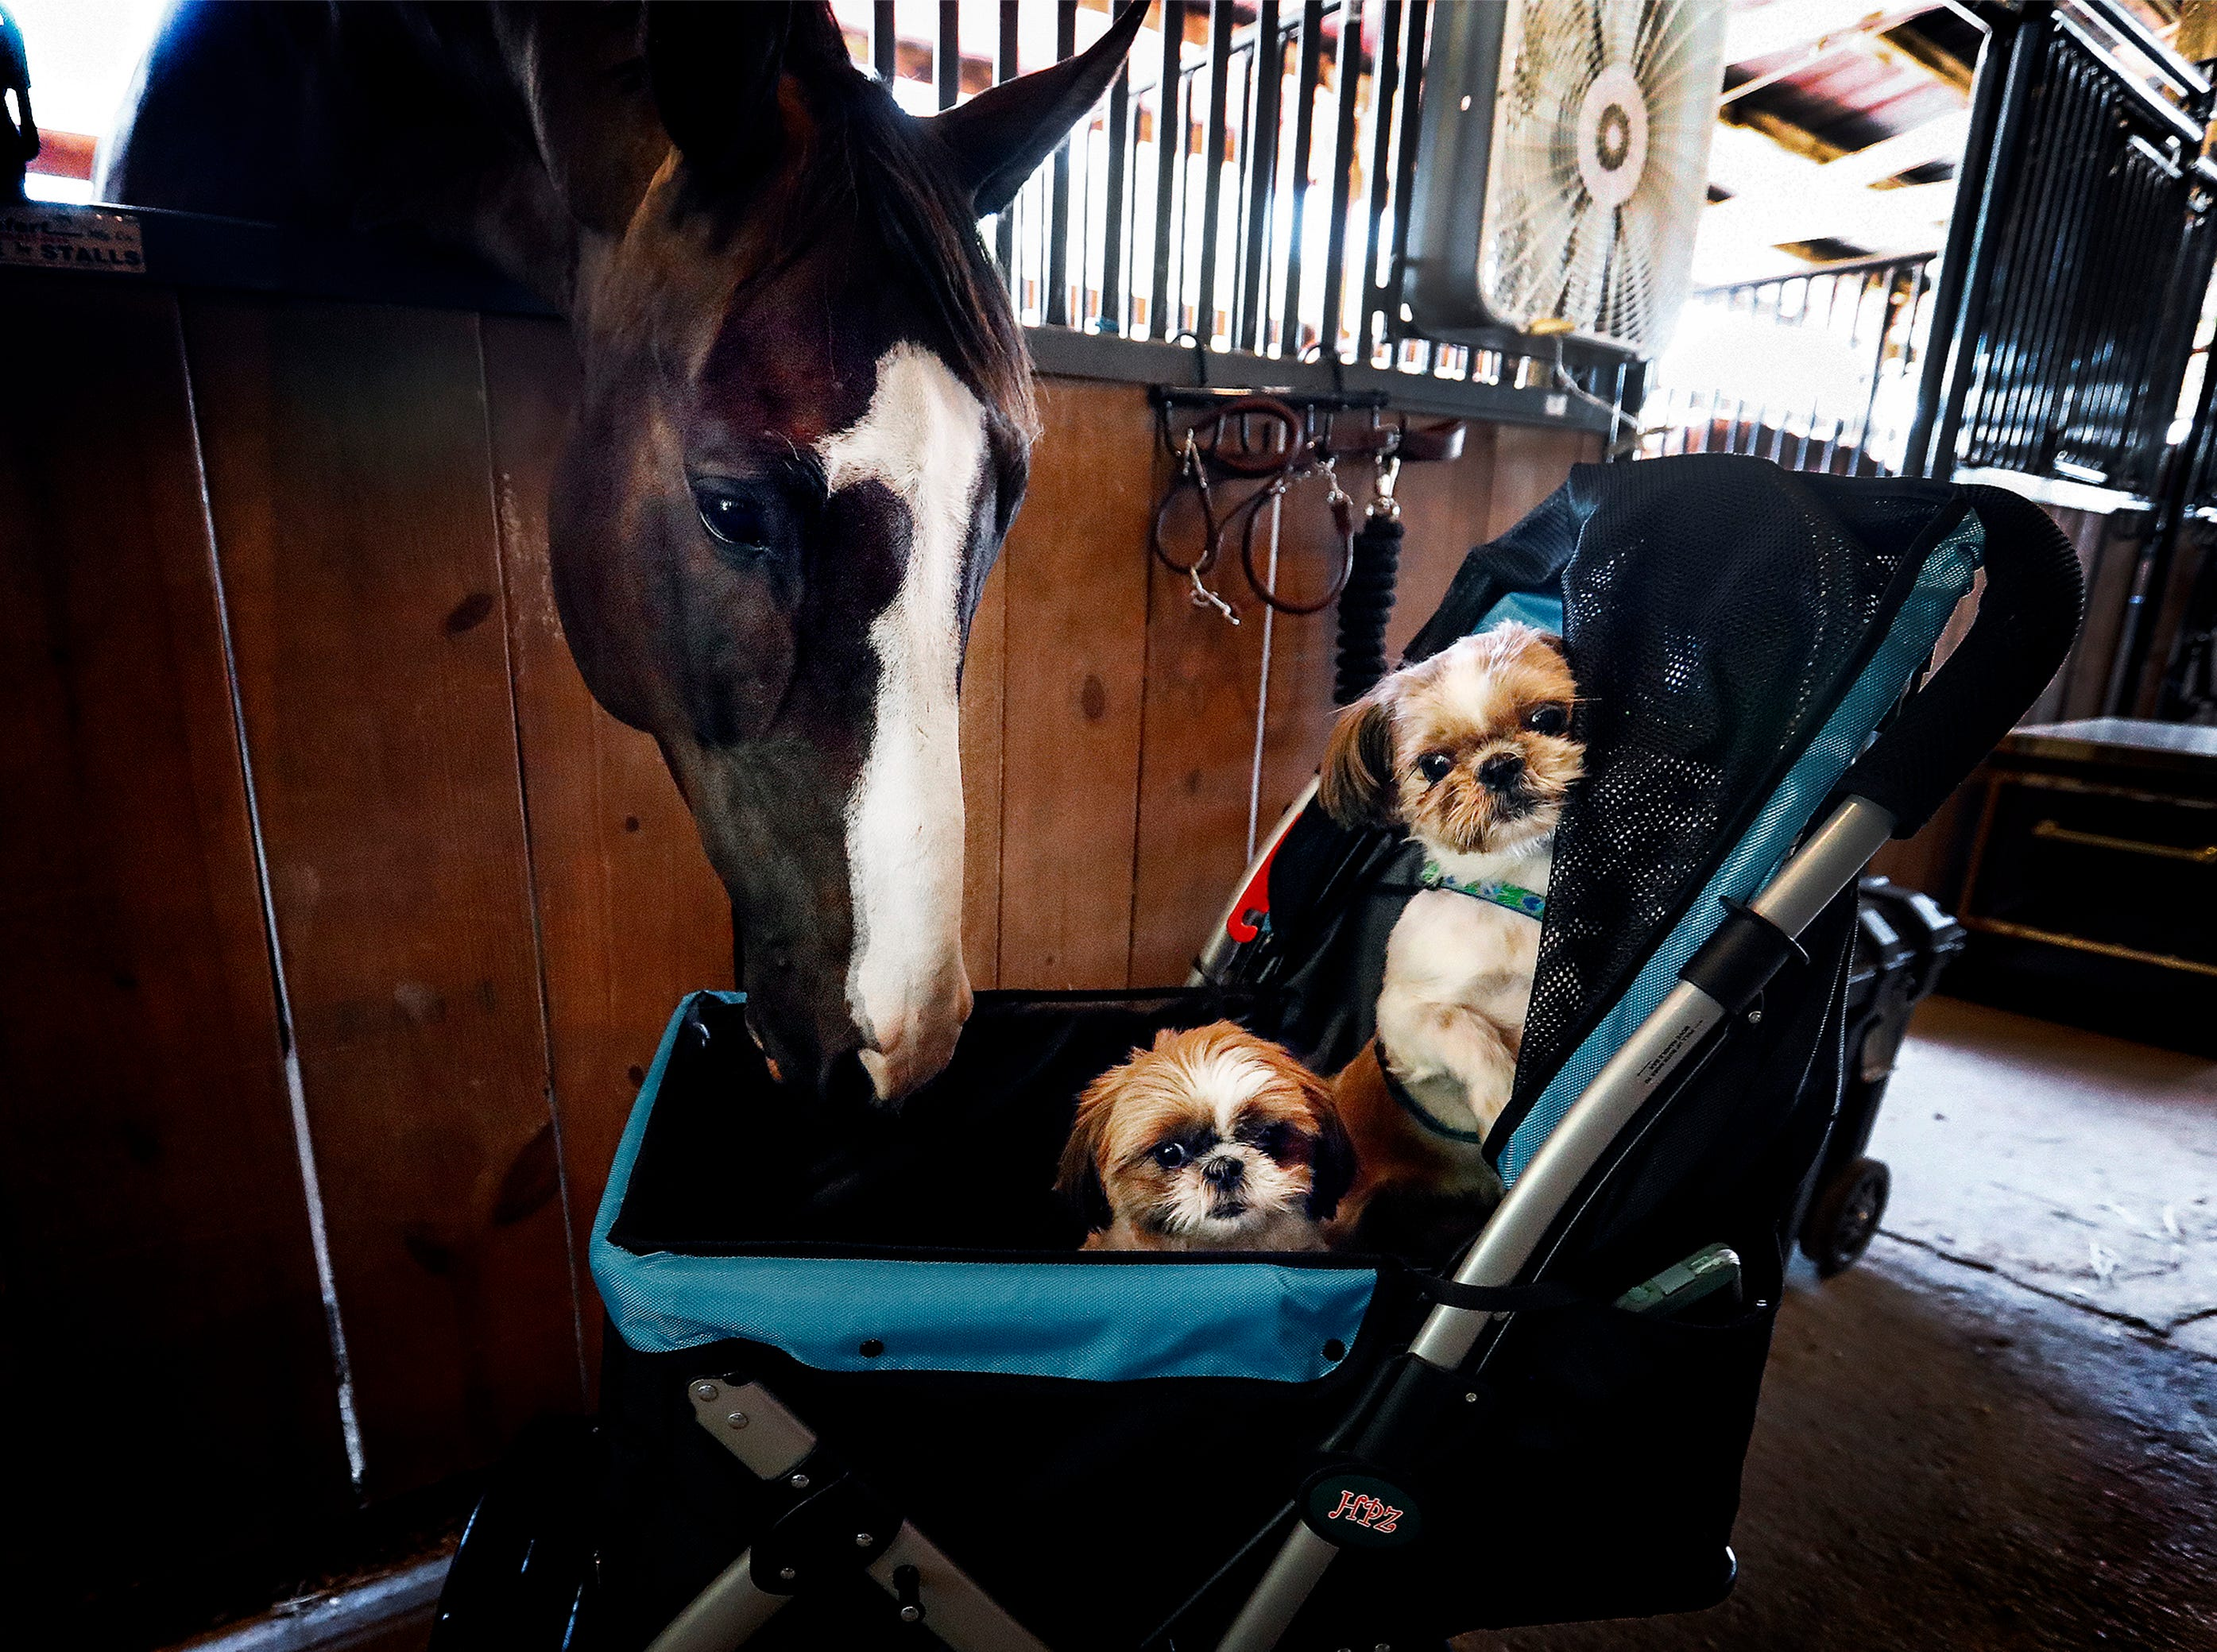 New Dream, a 9 year-old hunter horse, checks out shih tzu's Coco and Kitty during load-in day at the Germantown Charity Horse Show Monday morning.